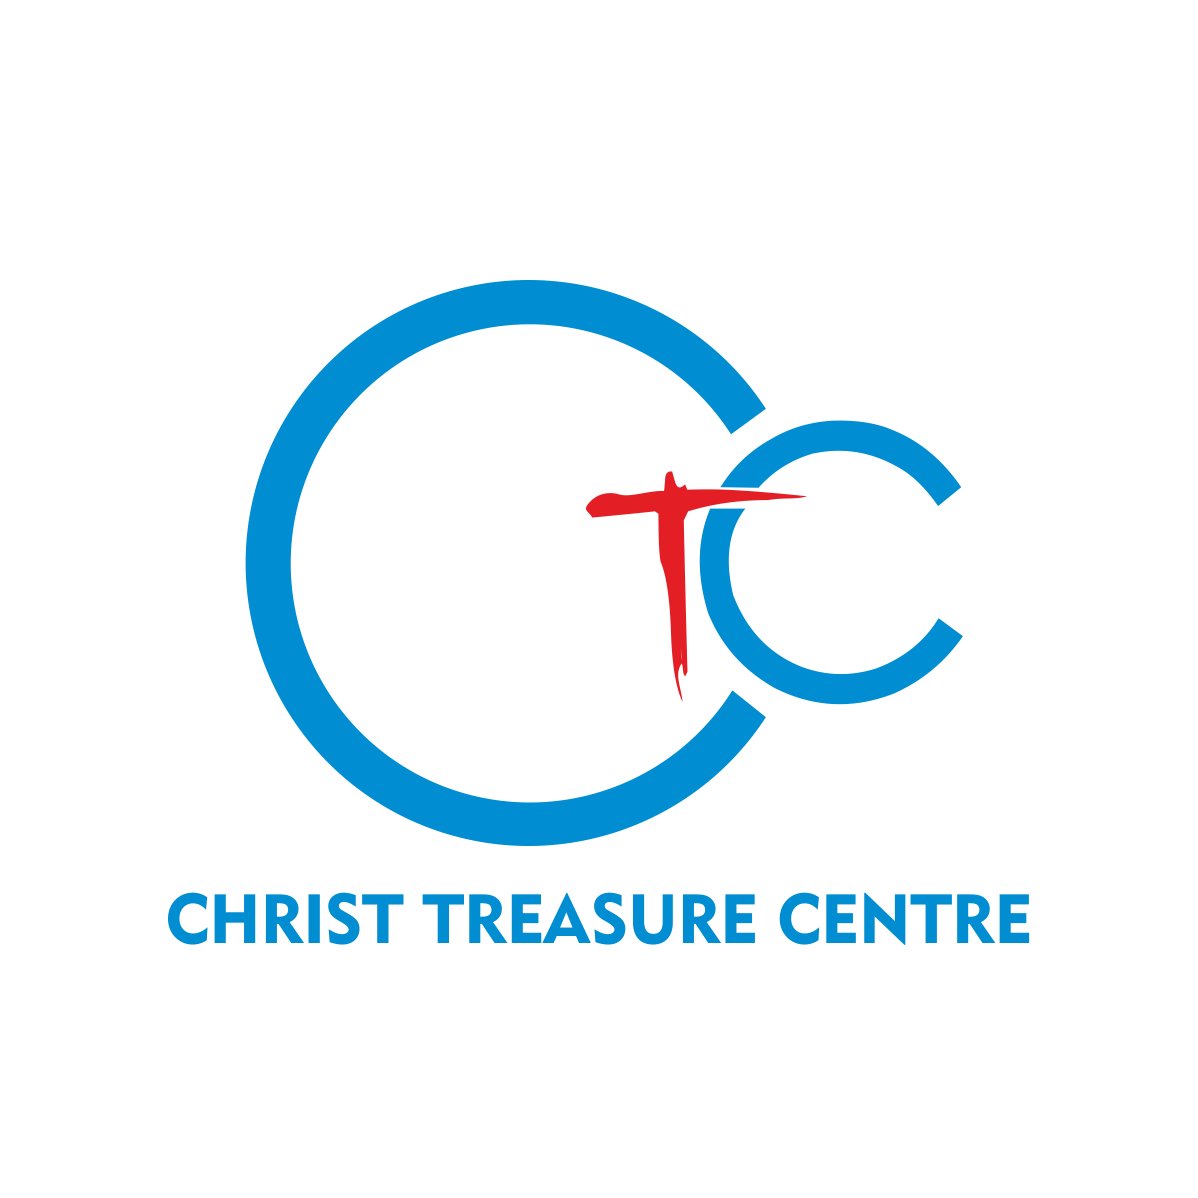 Christ Treasure Centre